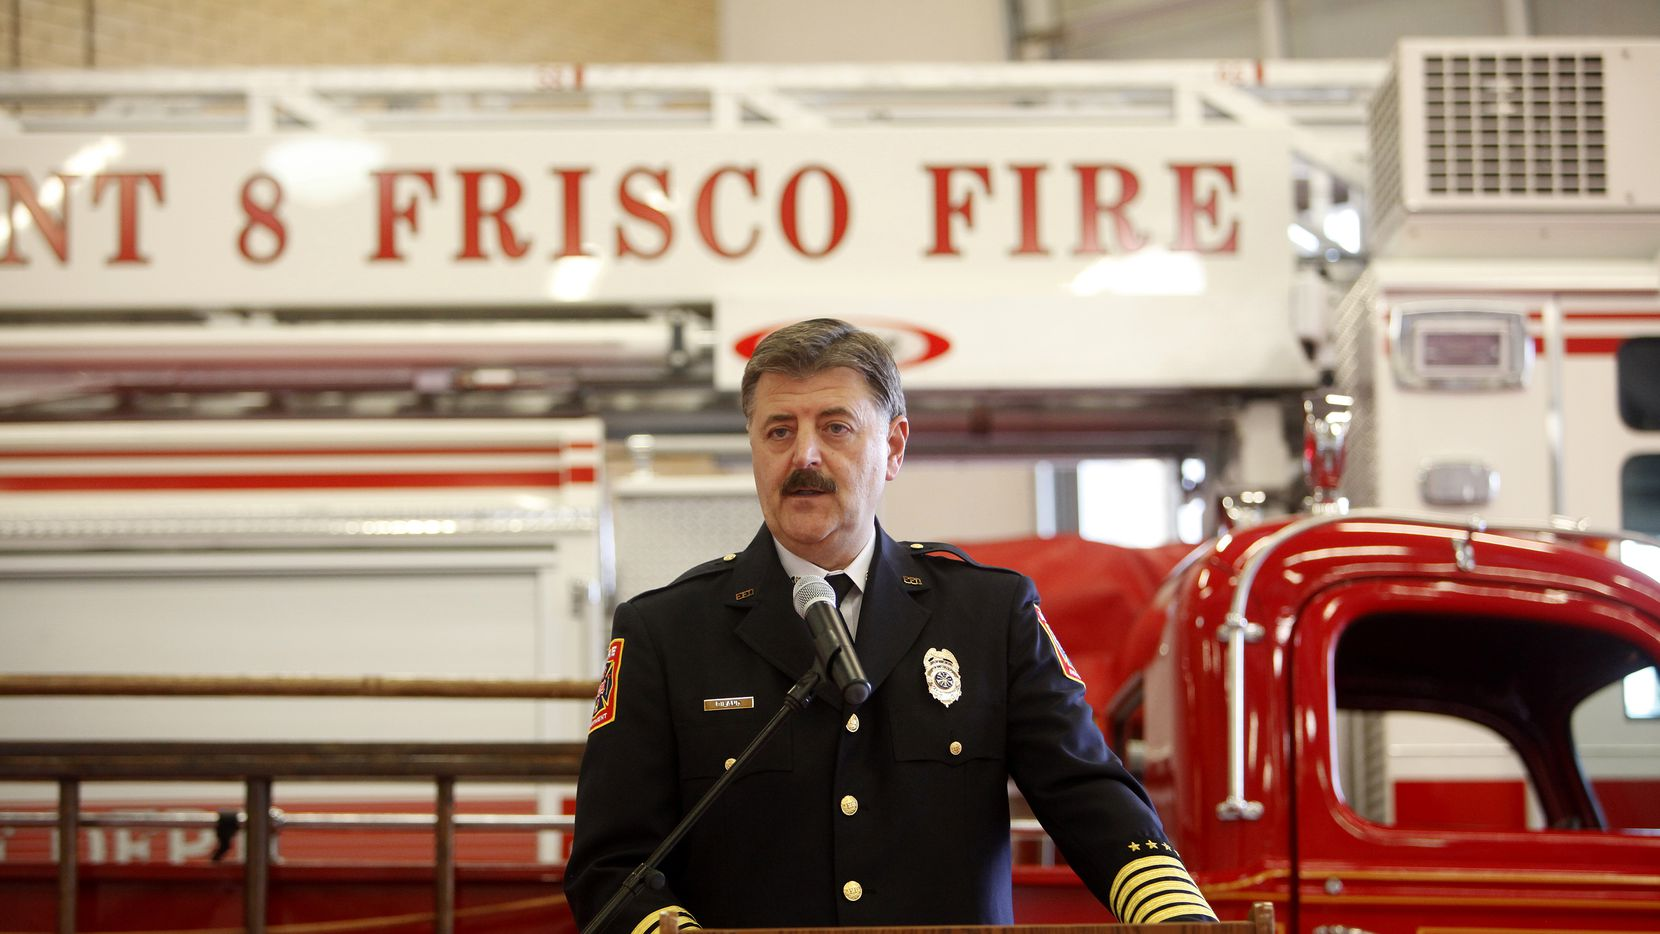 Frisco Fire Chief Mark Piland spoke during celebrations to mark the Frisco Fire Department's 100 years of service in 2014.